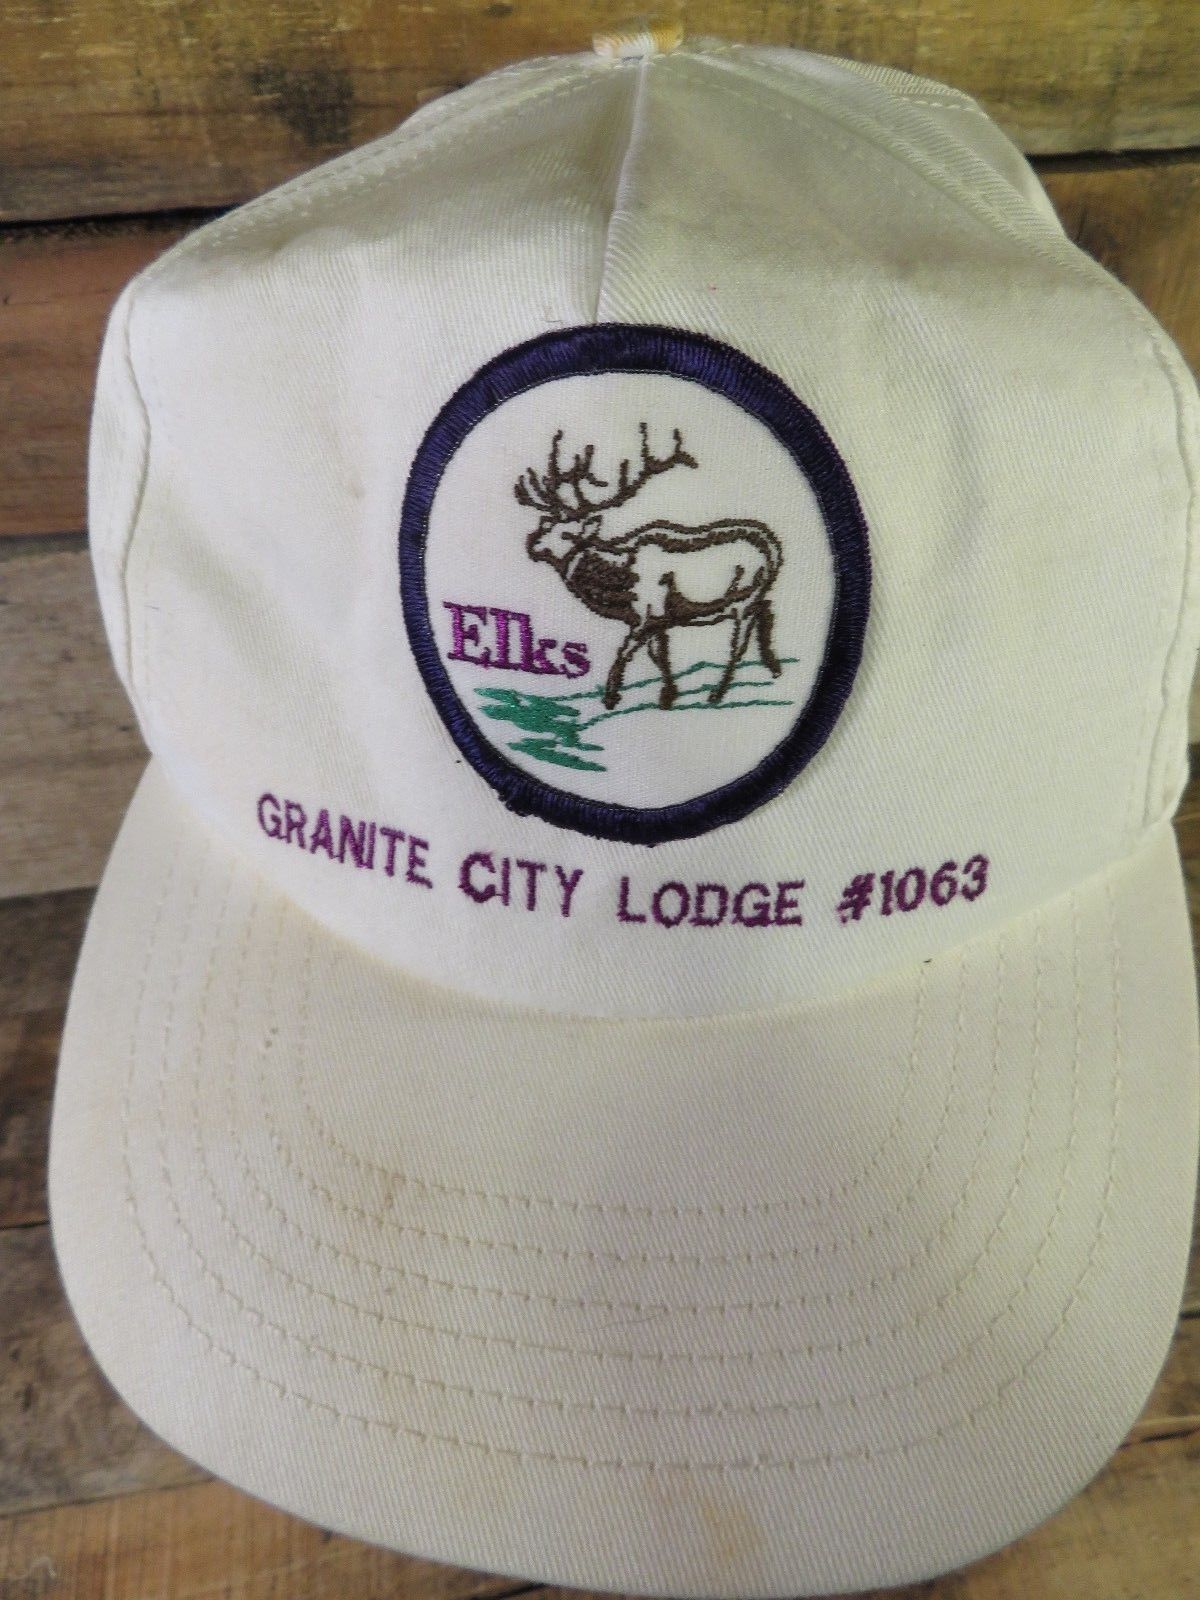 Elks Granito Urbano Lodge #1063 Vintage Regolabile Adulto Cappello